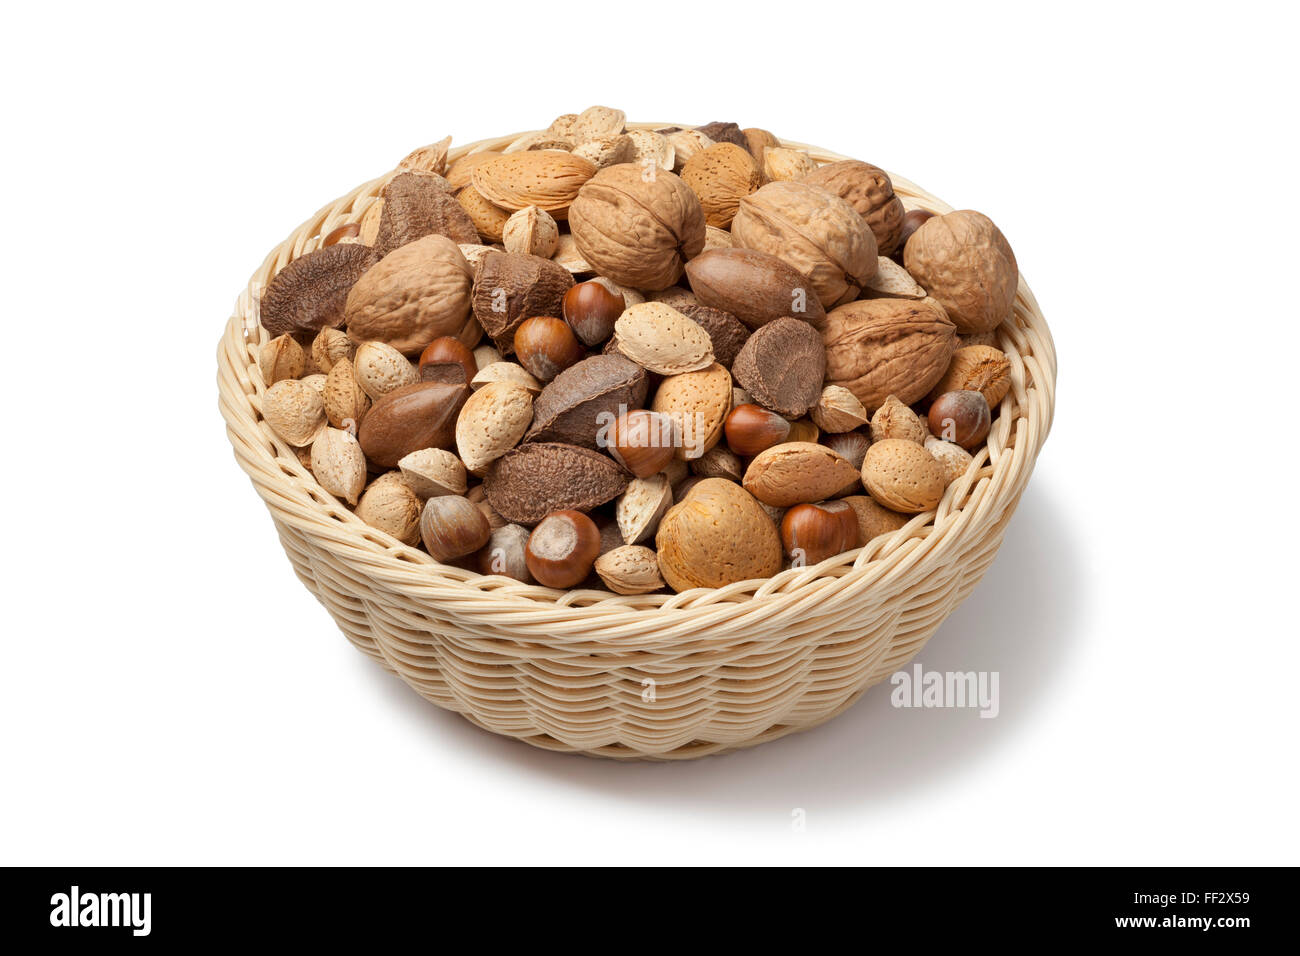 Basket with mixed nuts on white background - Stock Image